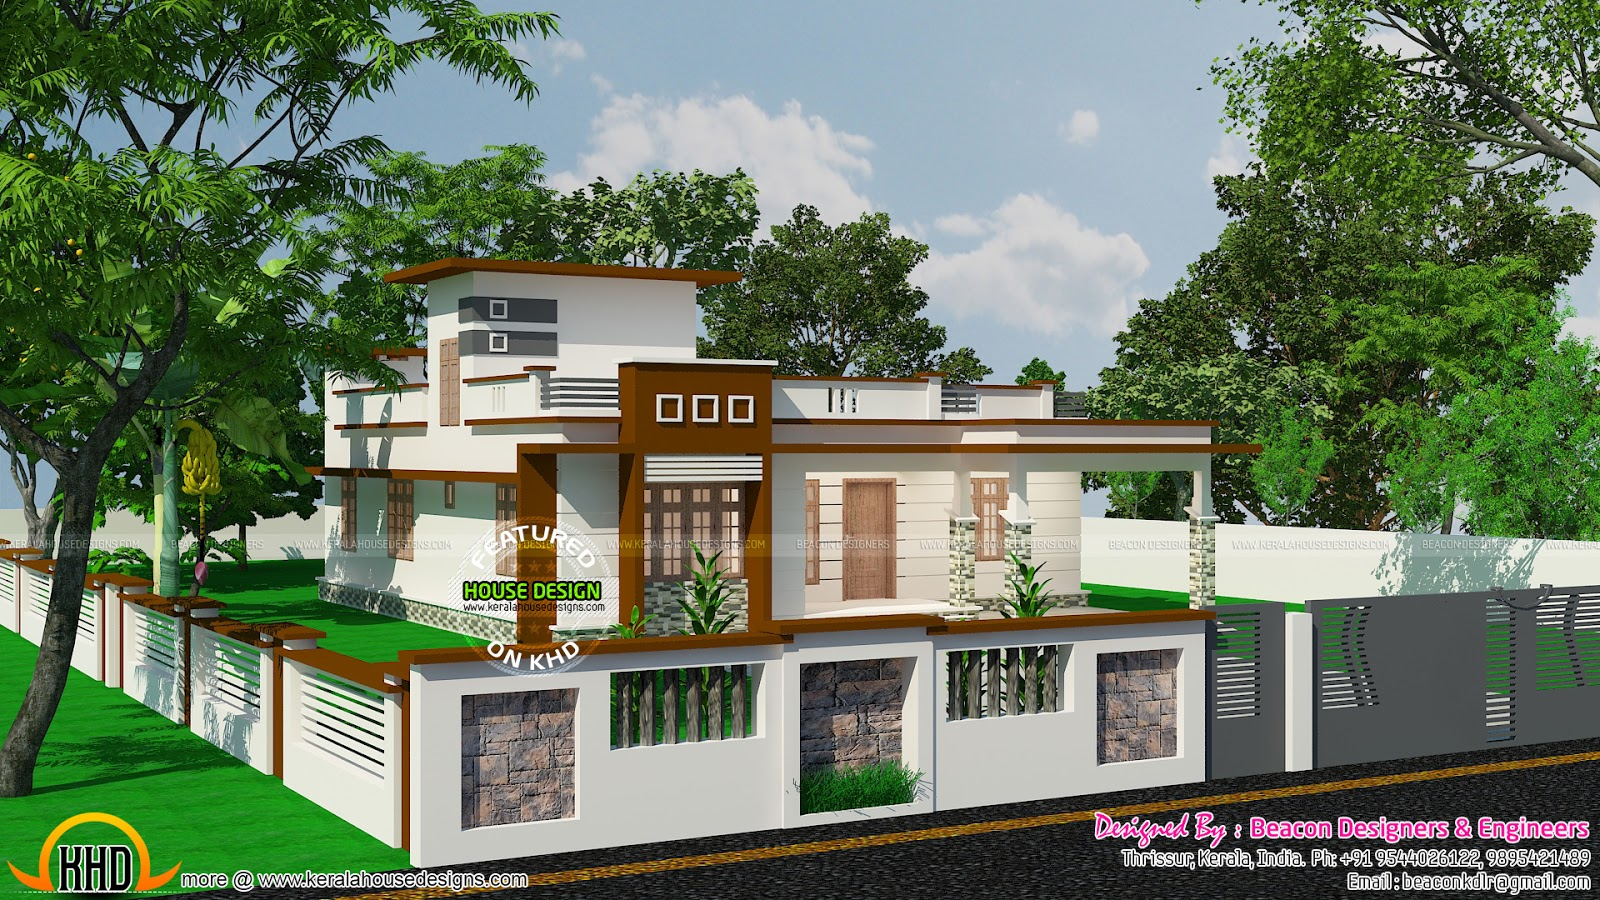 Flat roofed small budget villa with stair room kerala for Small budget house plans in kerala